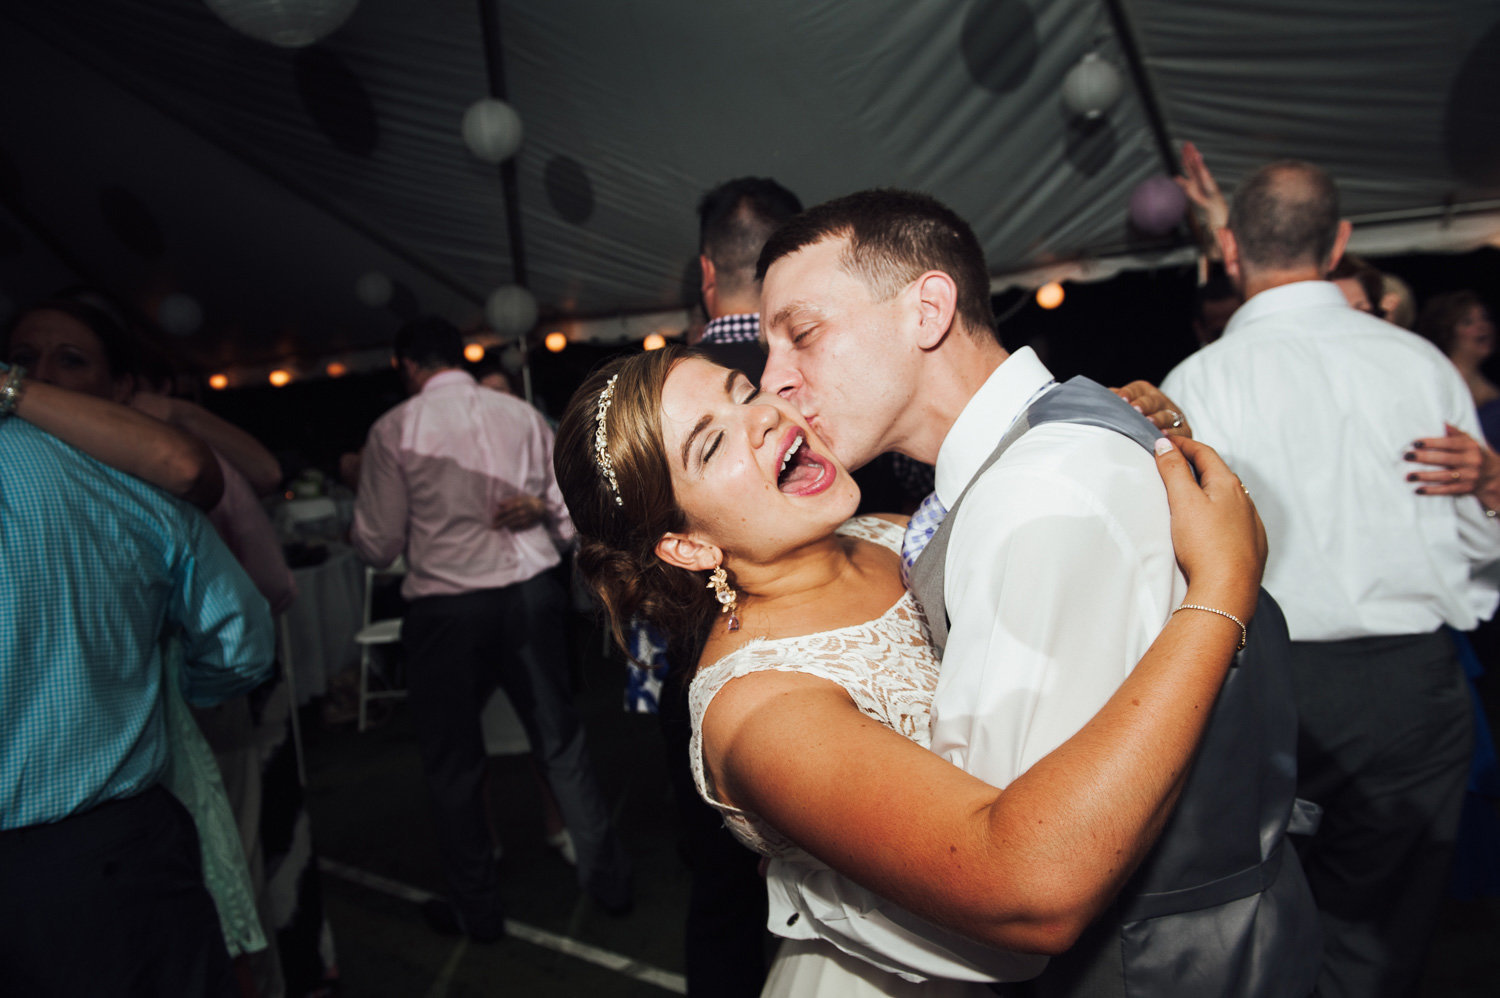 Bride and grooms kiss on the dance floor of a back yard, Philadelphia wedding.